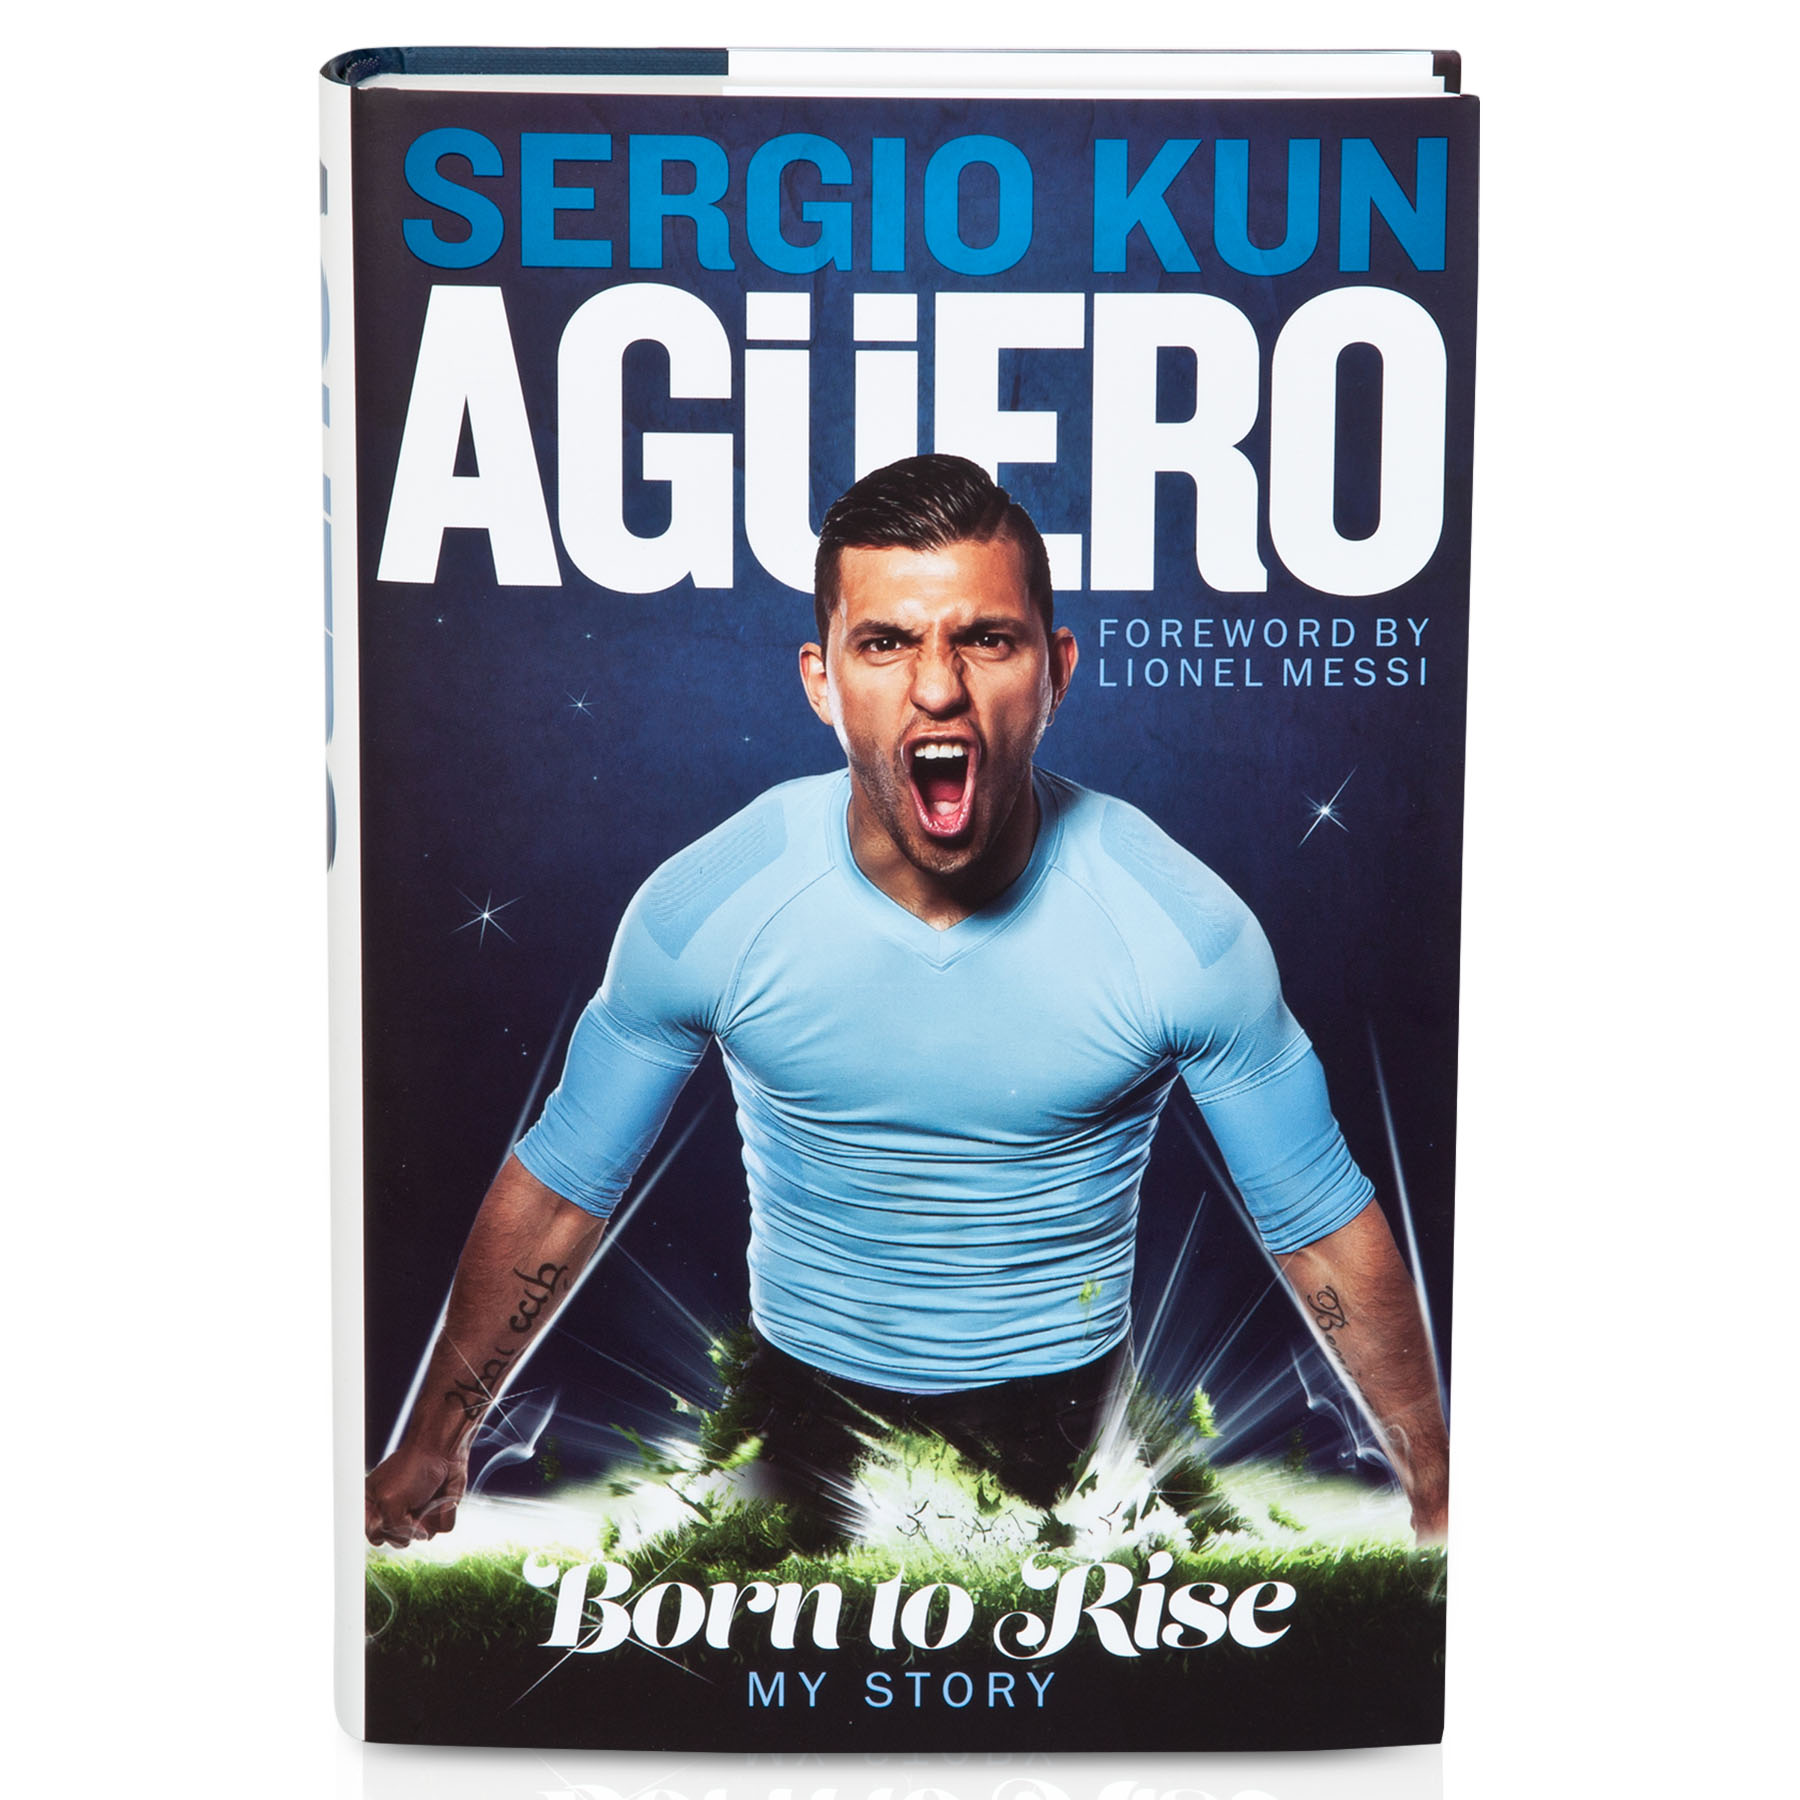 Manchester City Sergio Aguero: Born to Rise - My Story